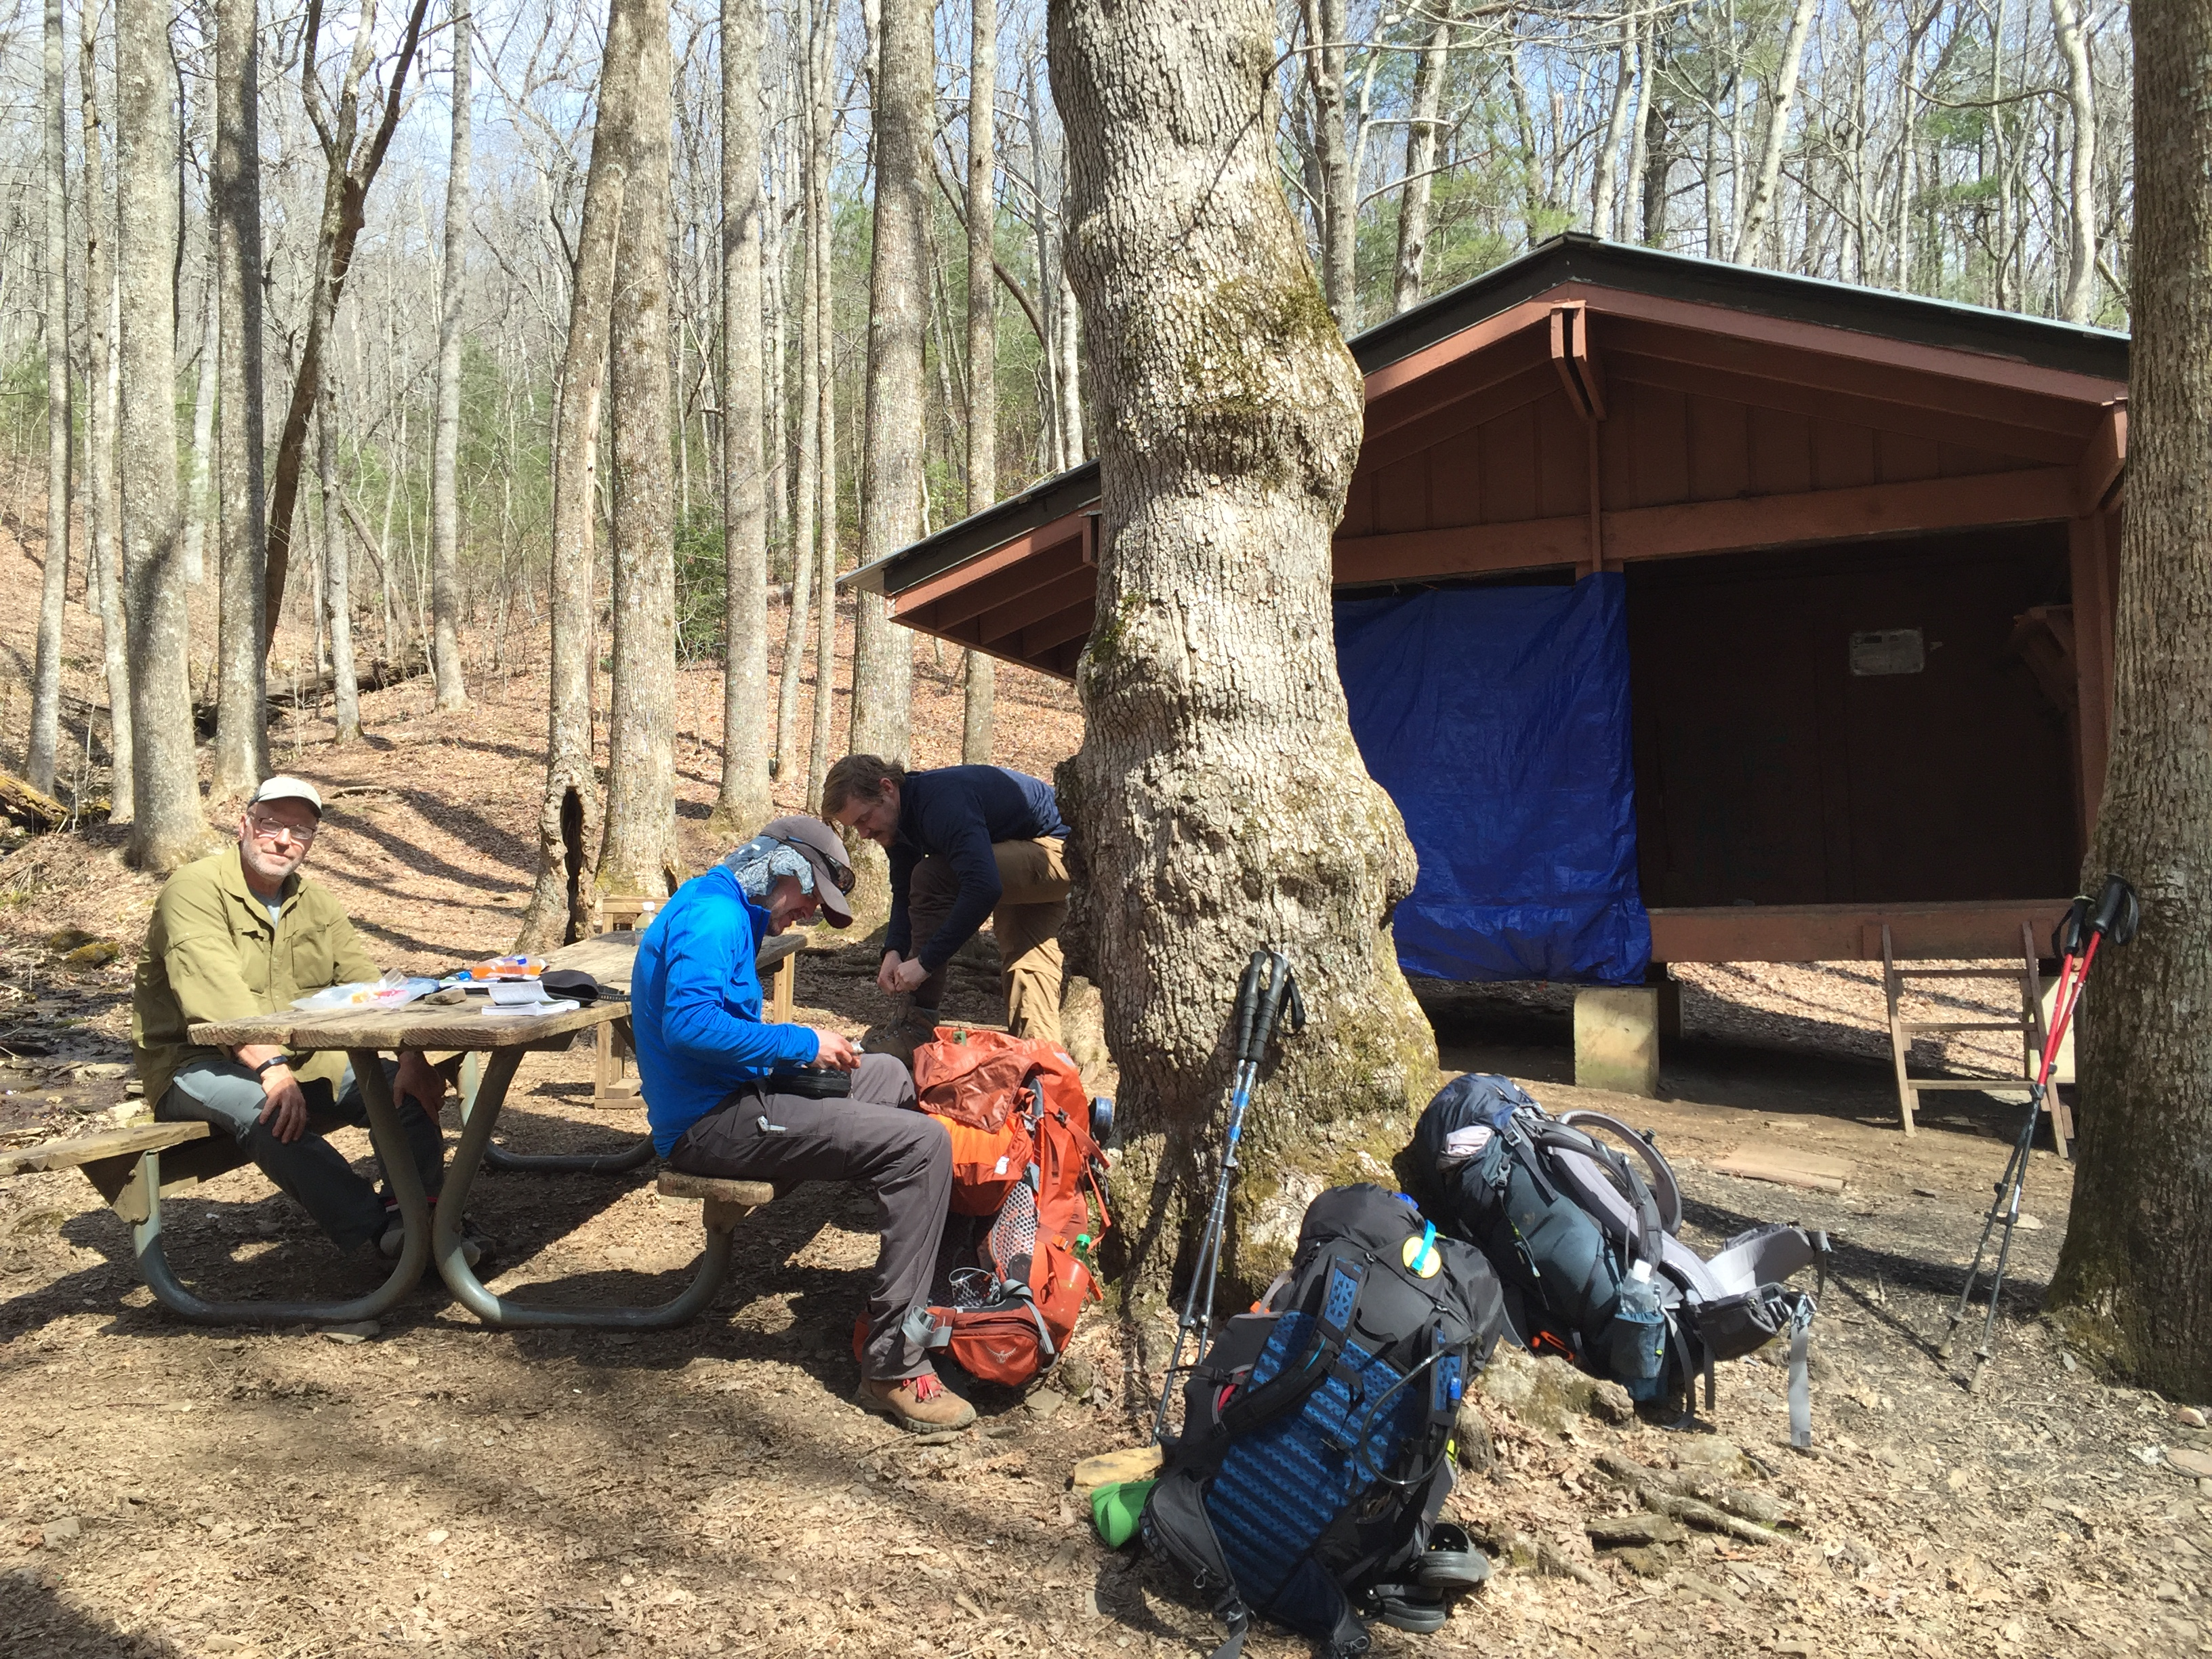 A typical lunch break at a shelter alone the AT.